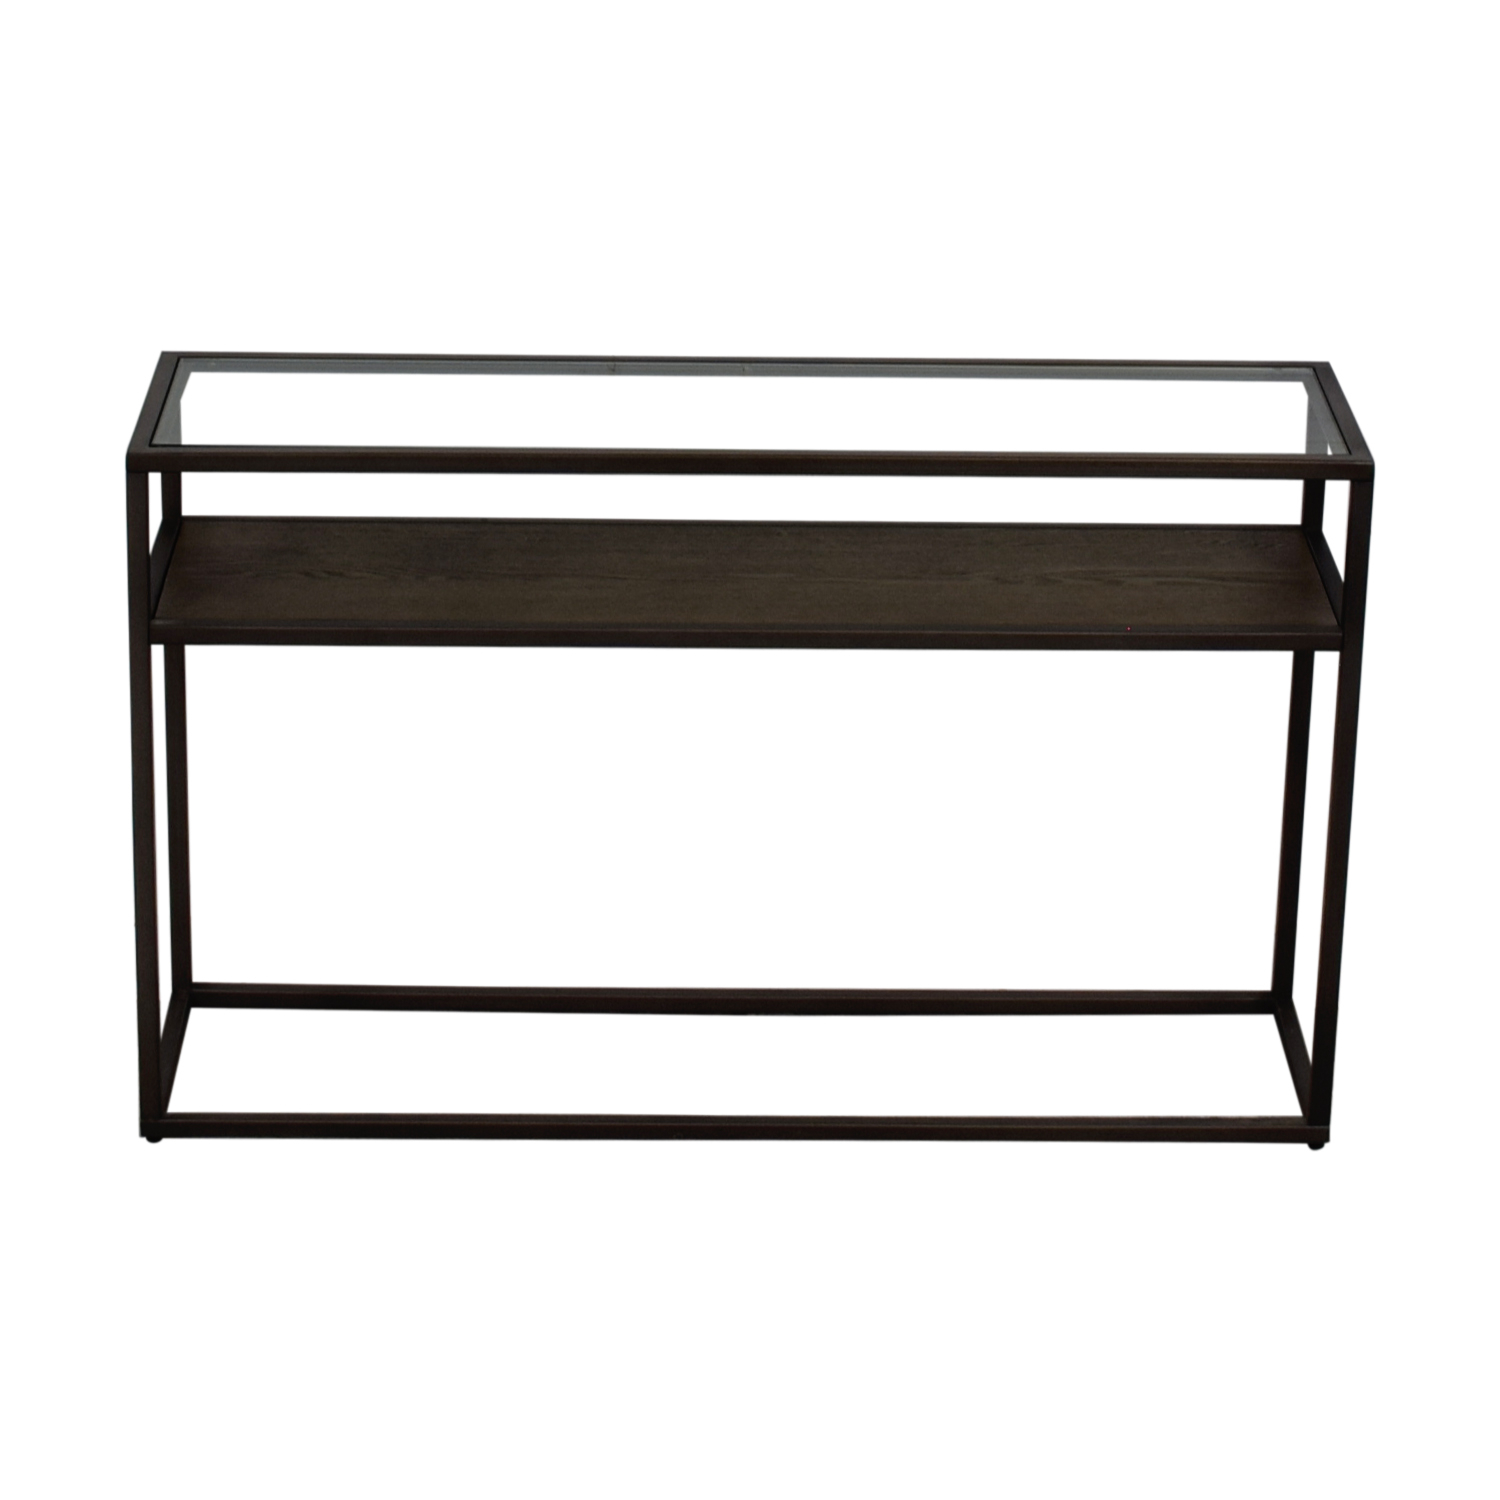 Crate & Barrel Switch Glass Wood And Metal Console Table with regard to Switch Console Tables (Image 6 of 30)